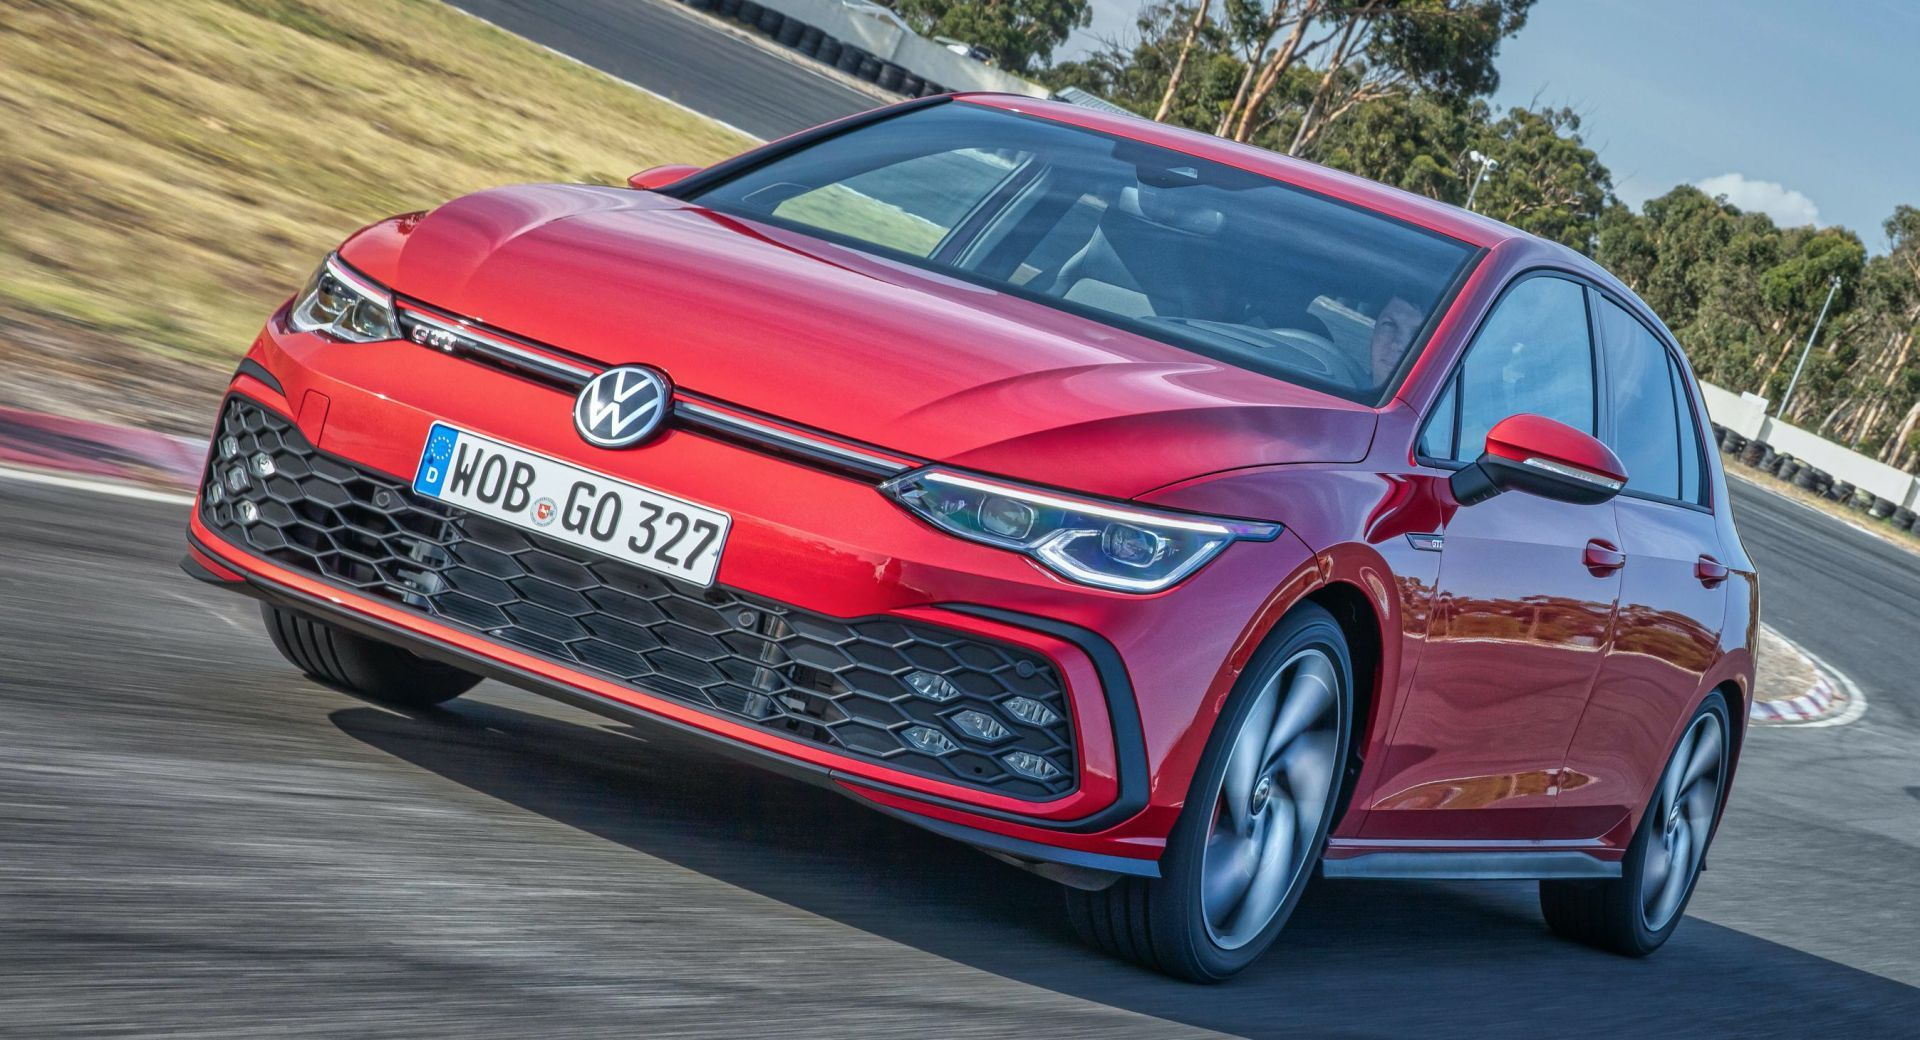 Golf Vw 2021 Price And Review In 2020 Golf Gti Volkswagen Gti